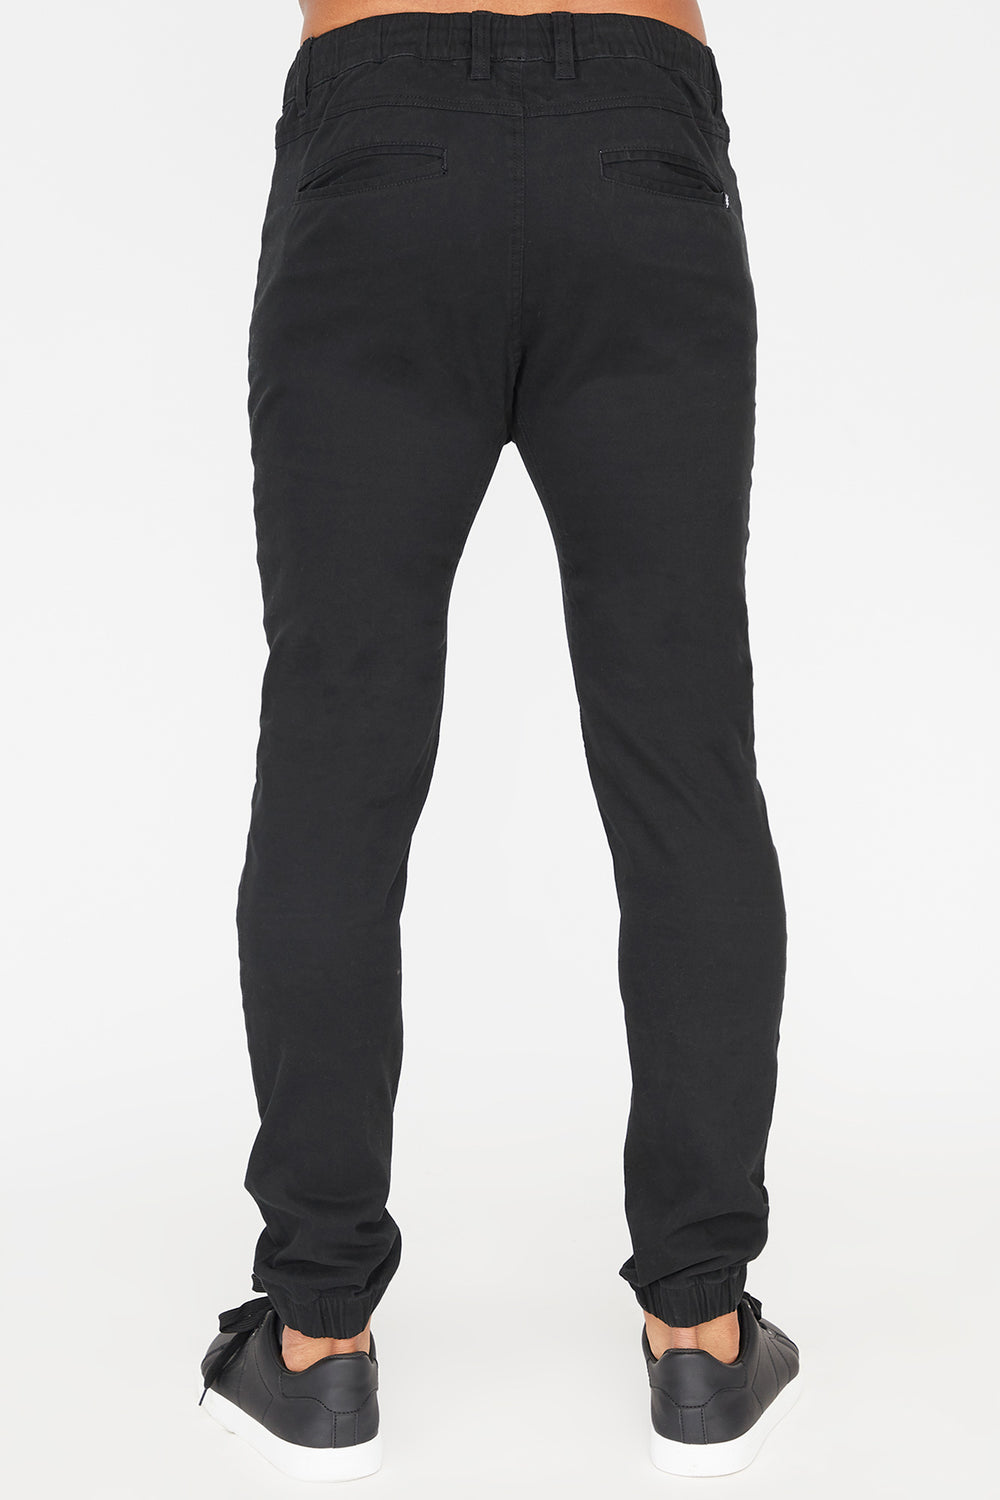 Zoo York Mens Solid Twill Zip Jogger Black